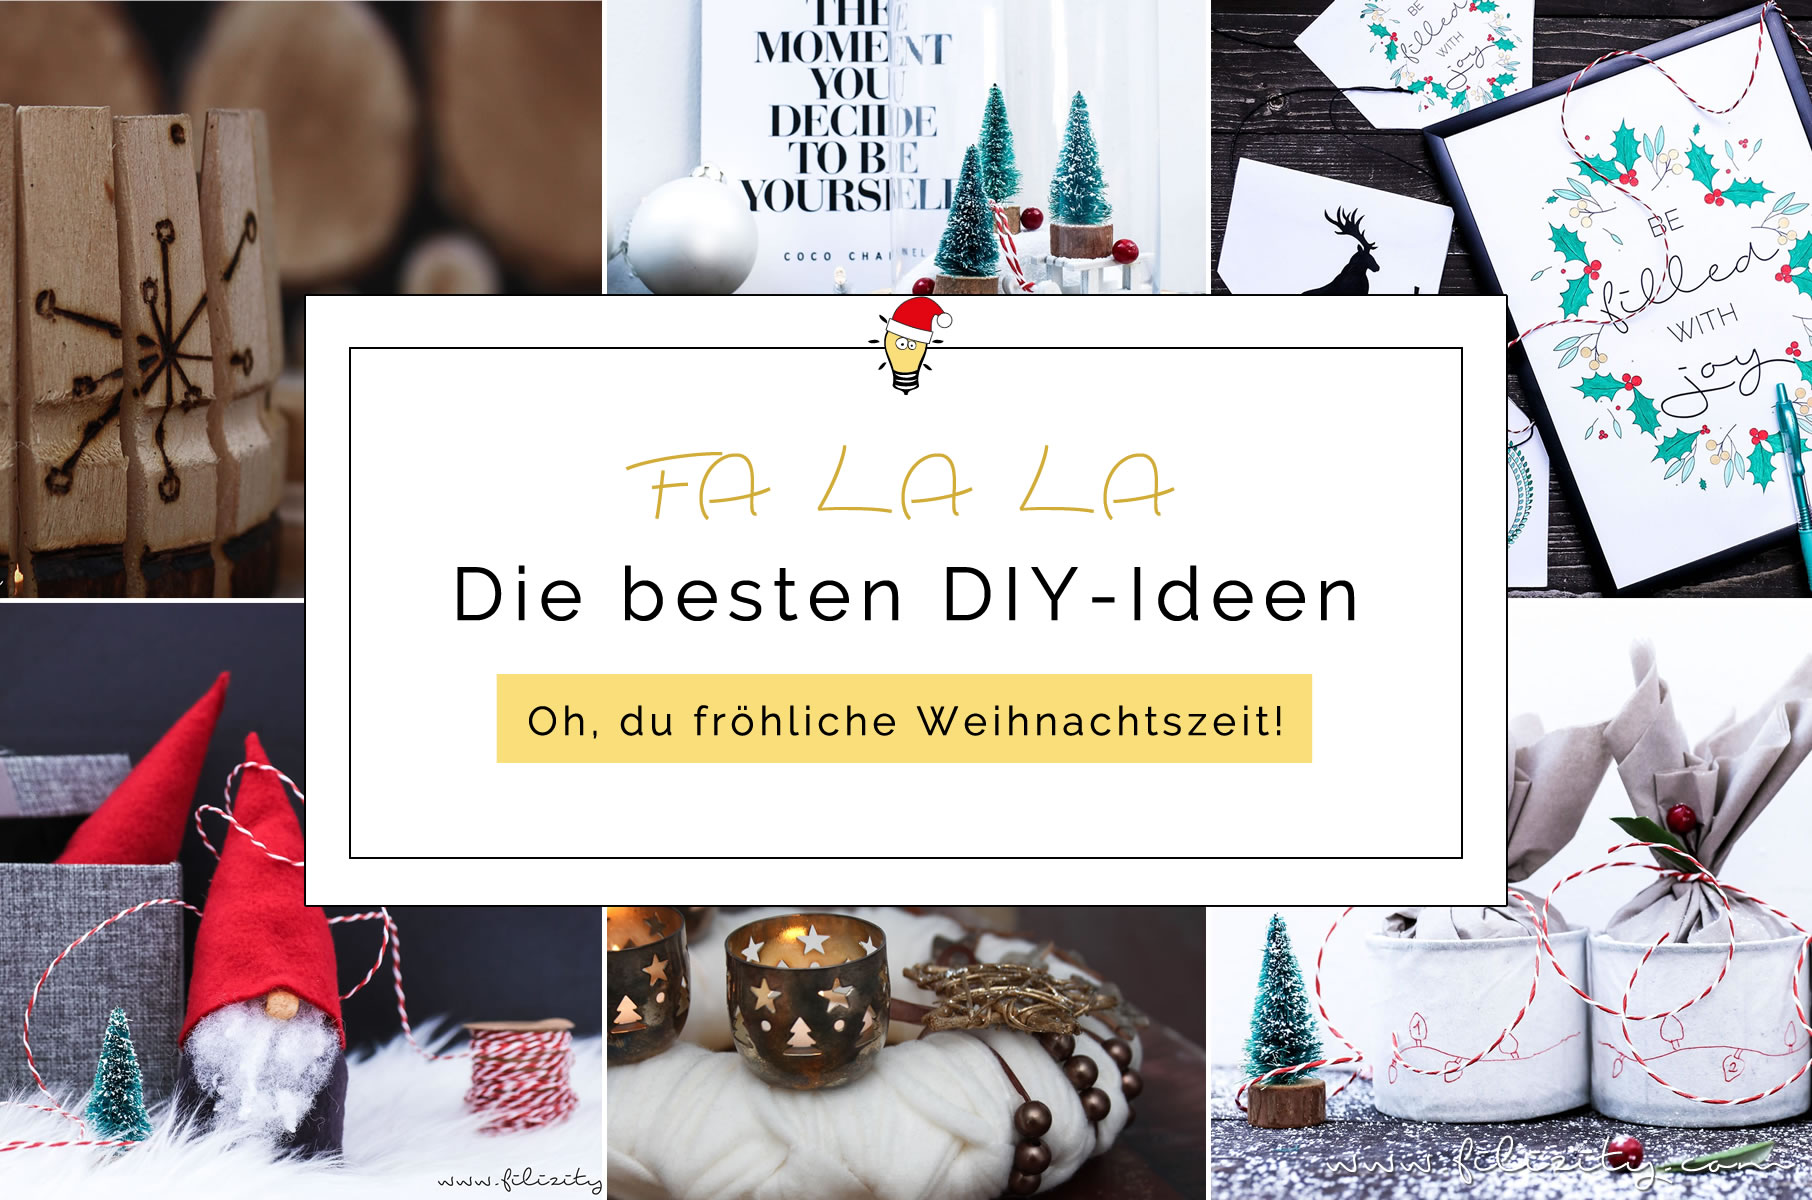 die besten diy ideen f r weihnachten diy blog aus koblenz. Black Bedroom Furniture Sets. Home Design Ideas